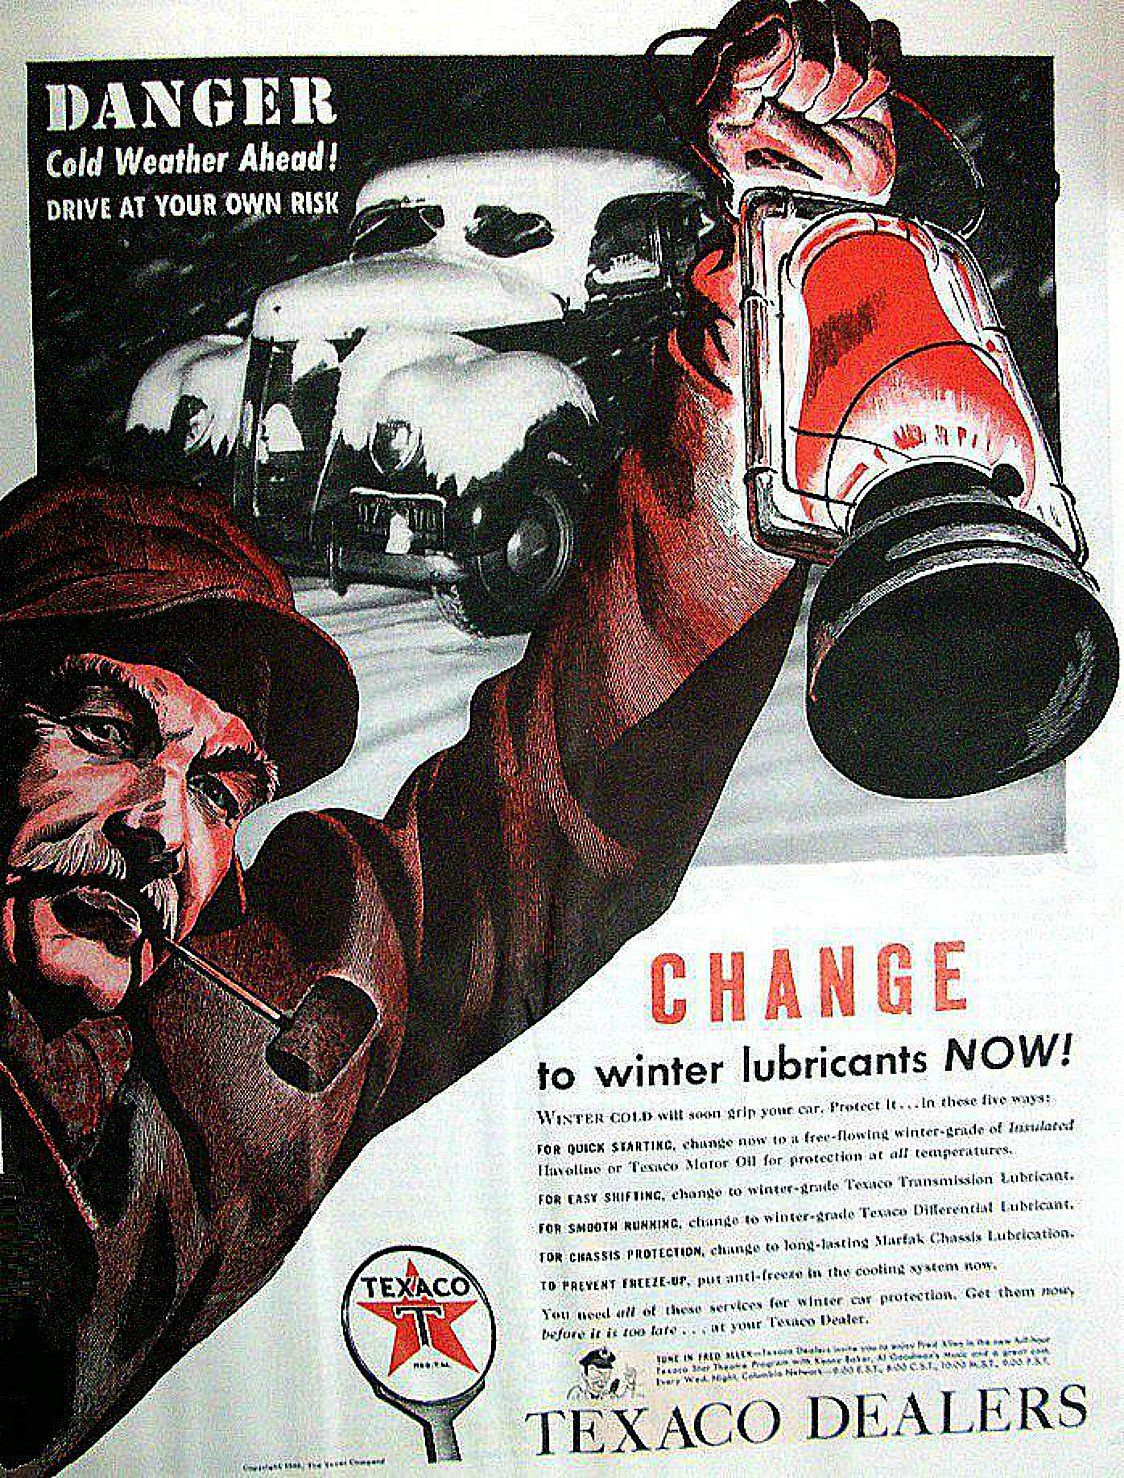 A Texaco advertisement in a 1940's Life Magazine